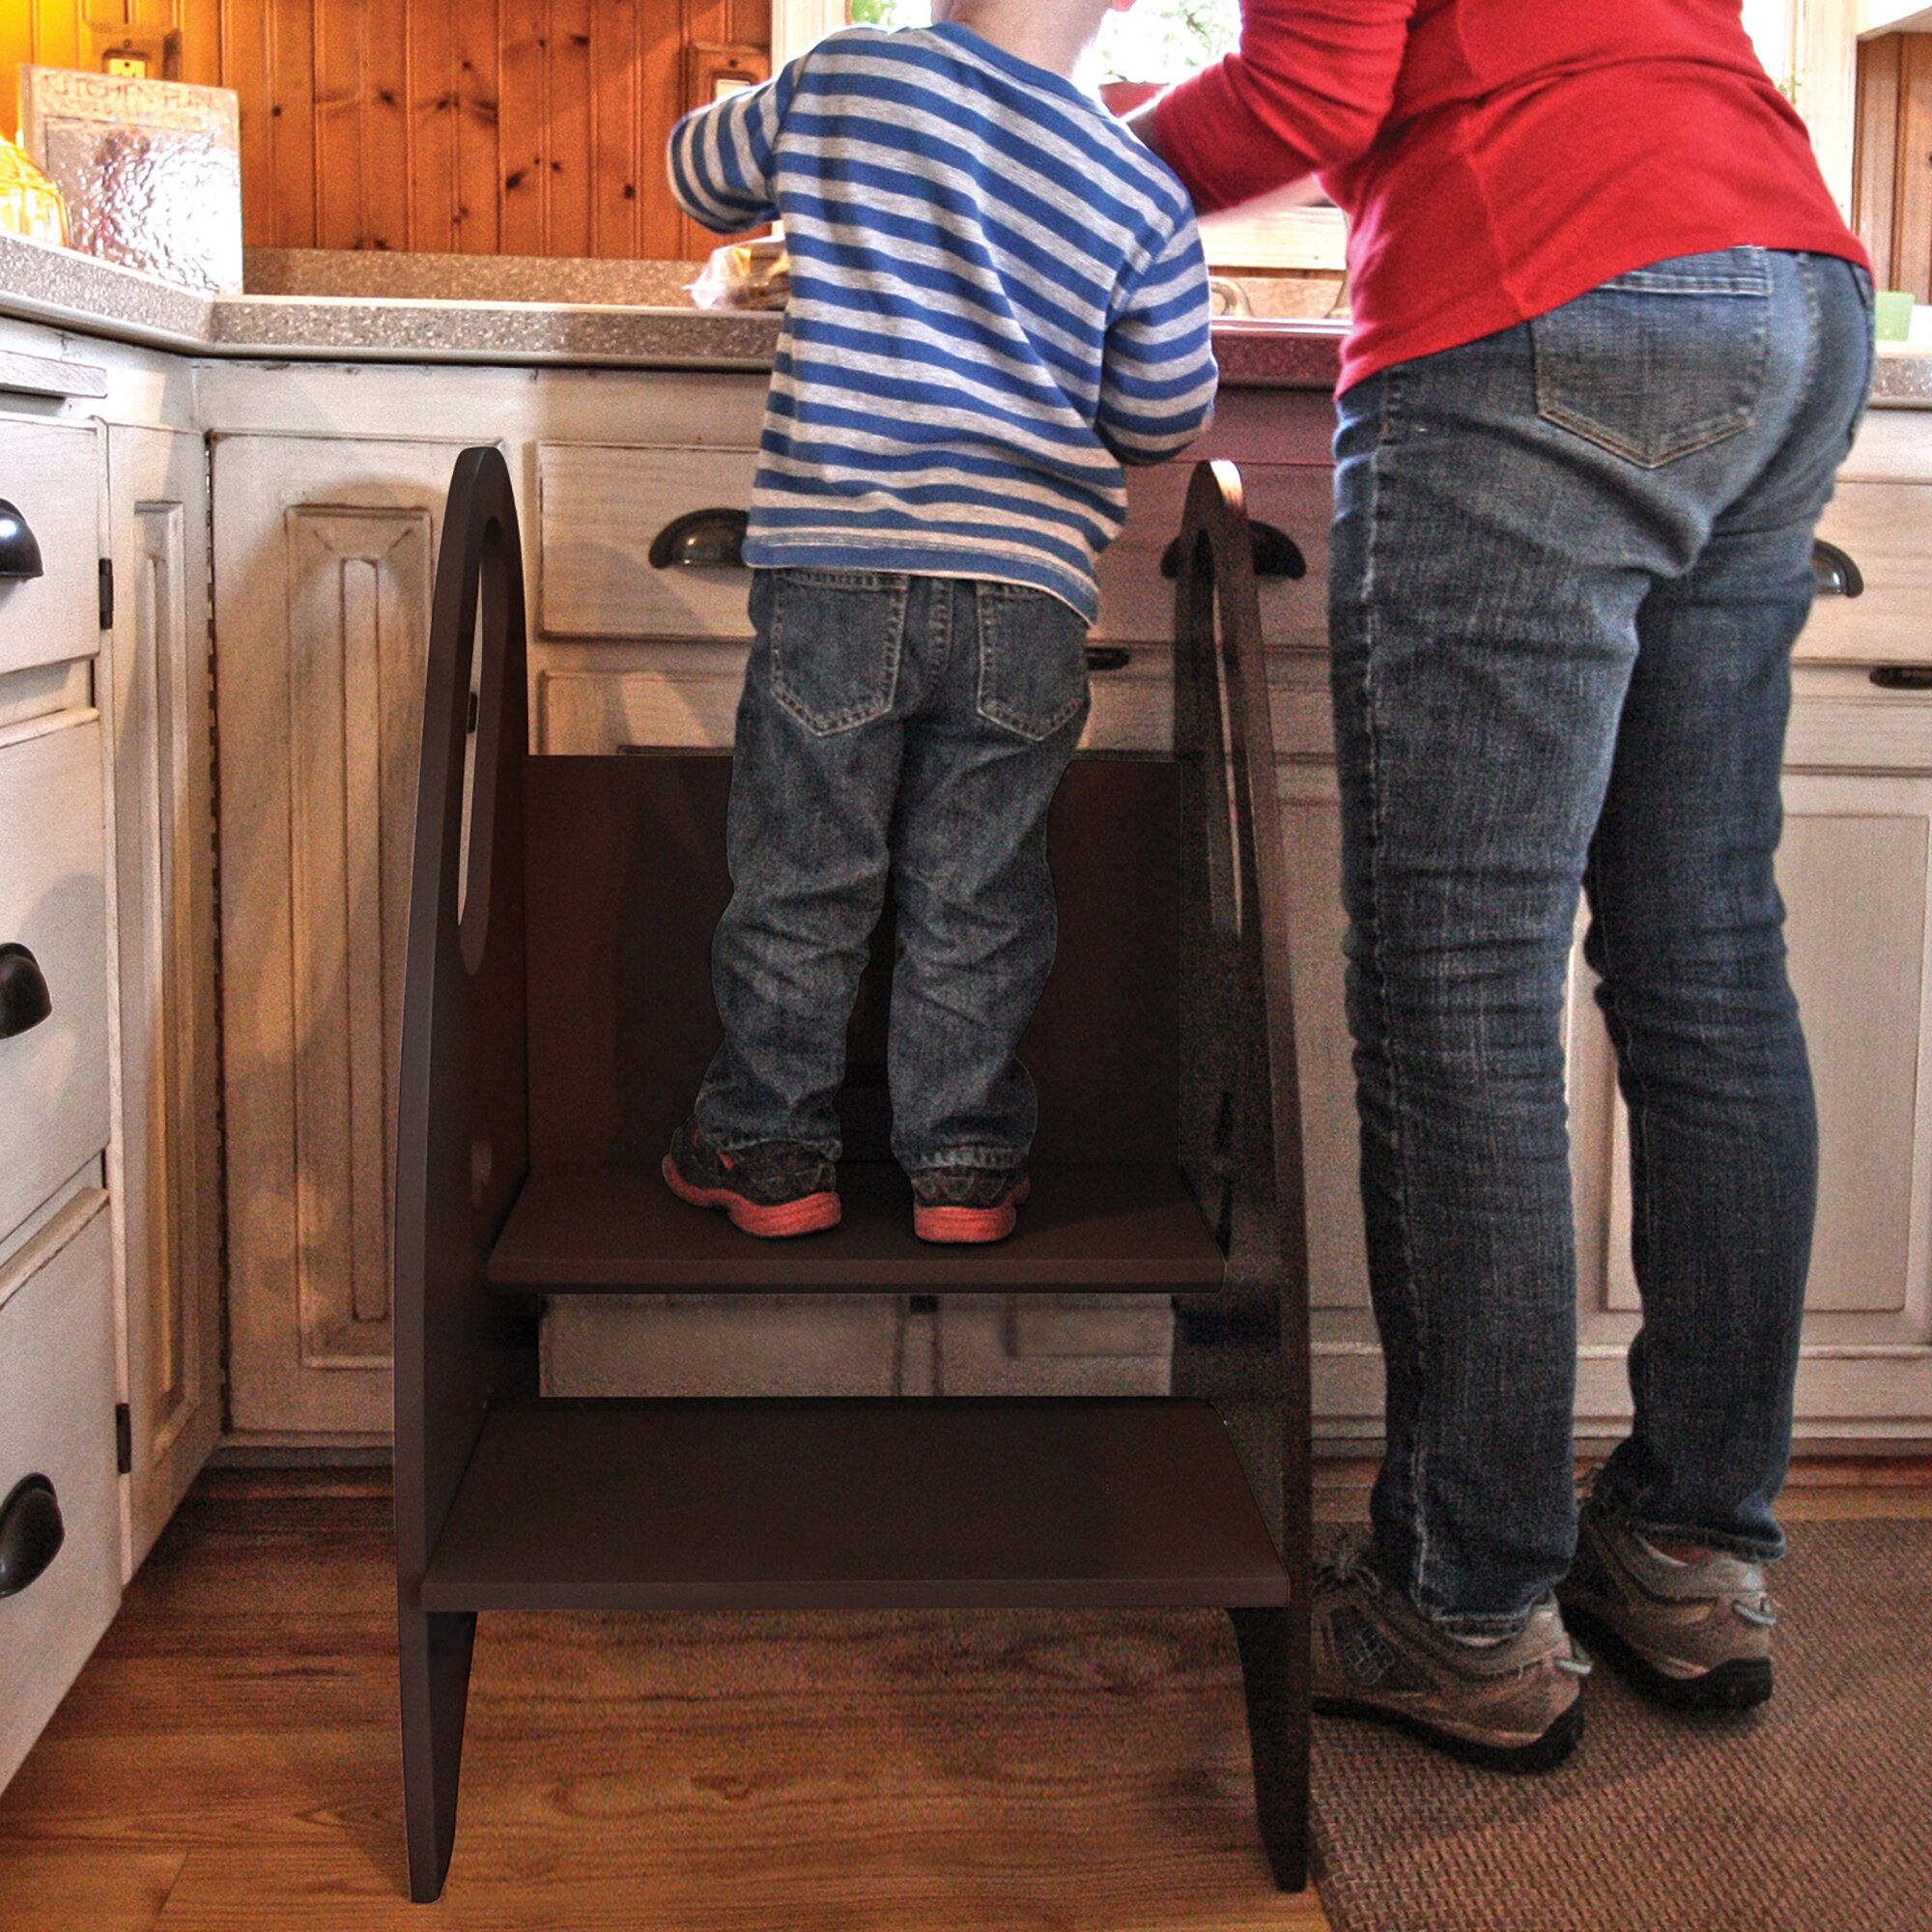 Little Partners 2 Step Wood Kids Growing Step Stool With